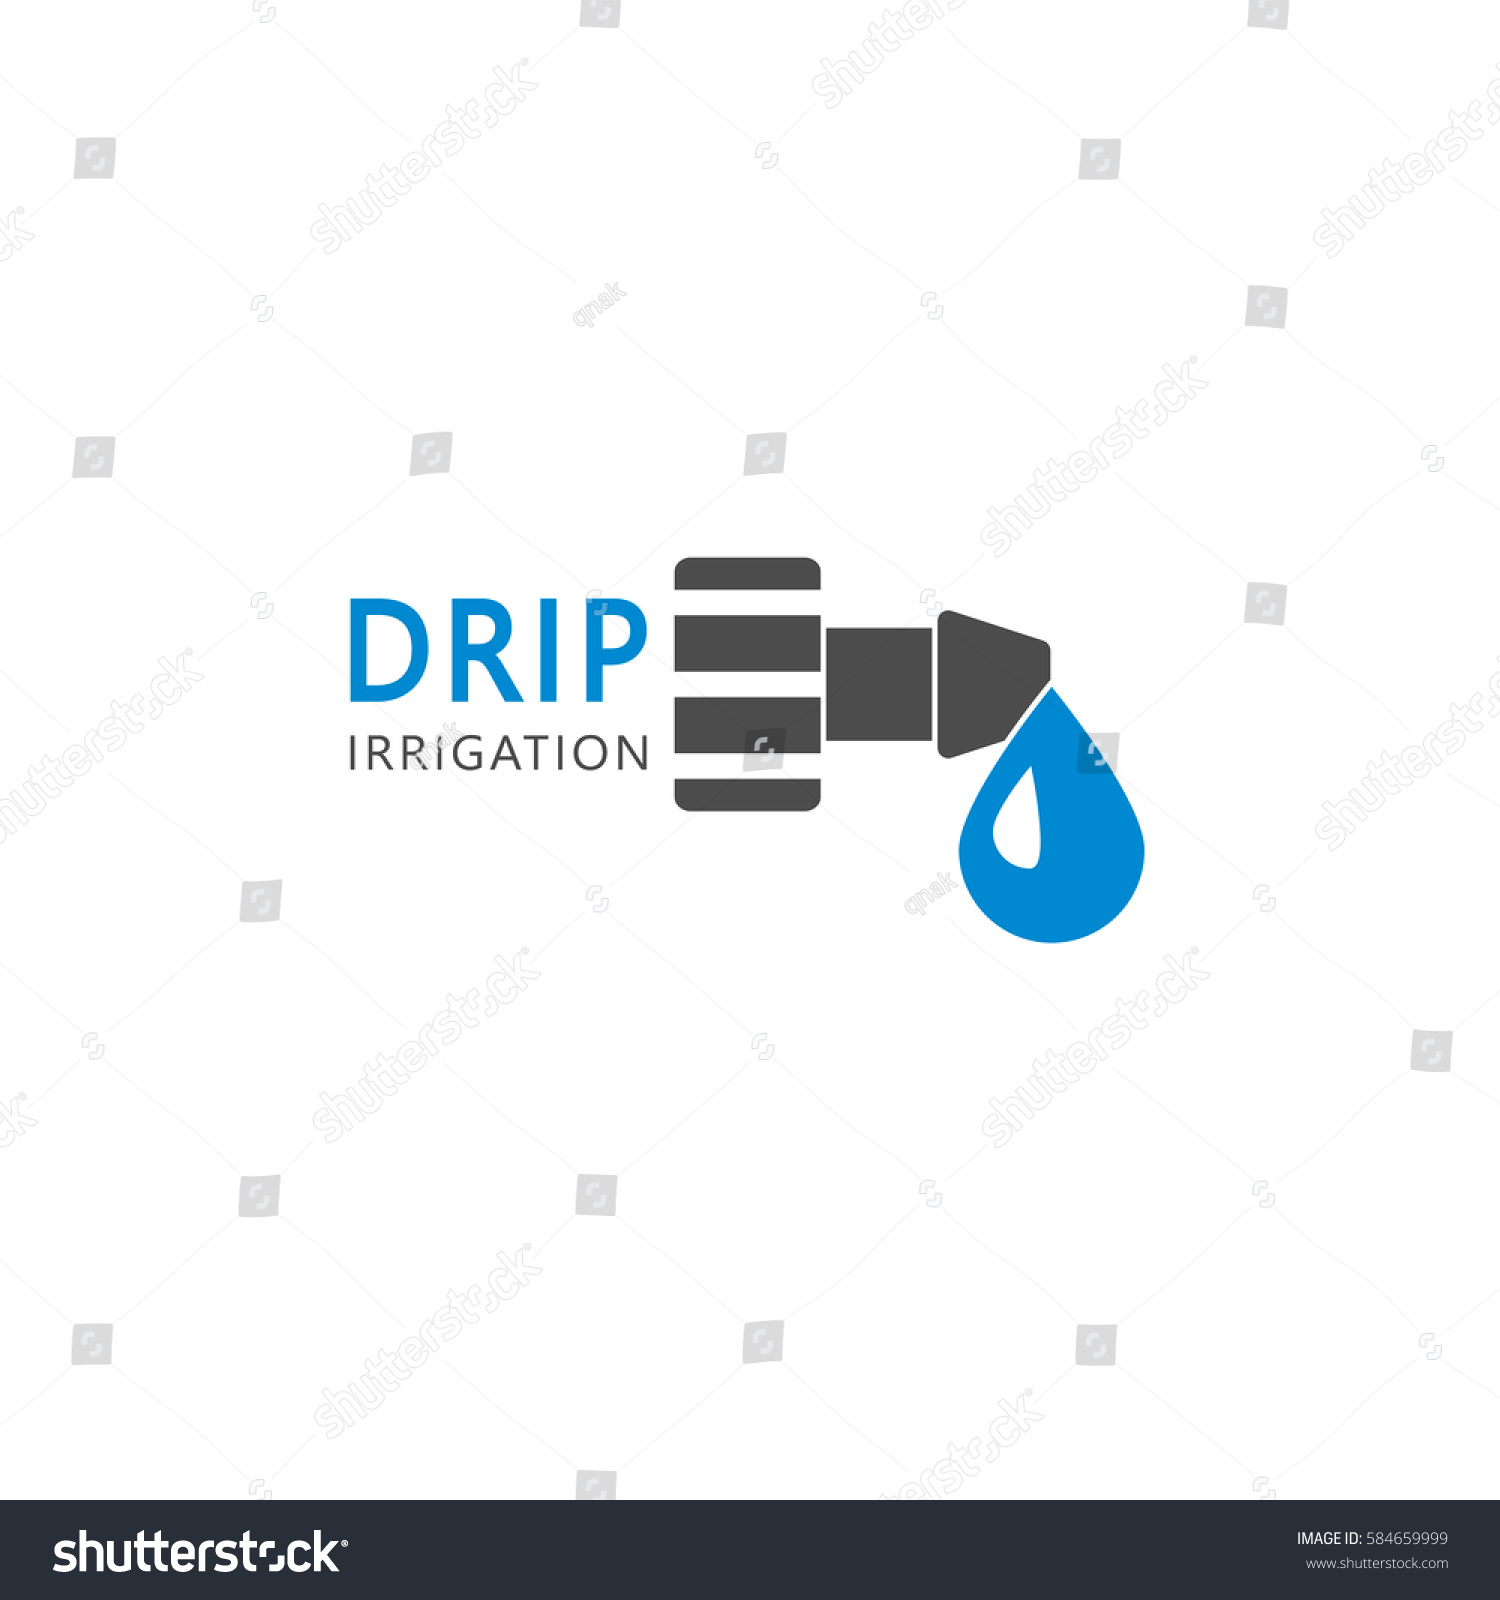 Drip irrigation system logo design vector stock vector - Logo lavage machine ...